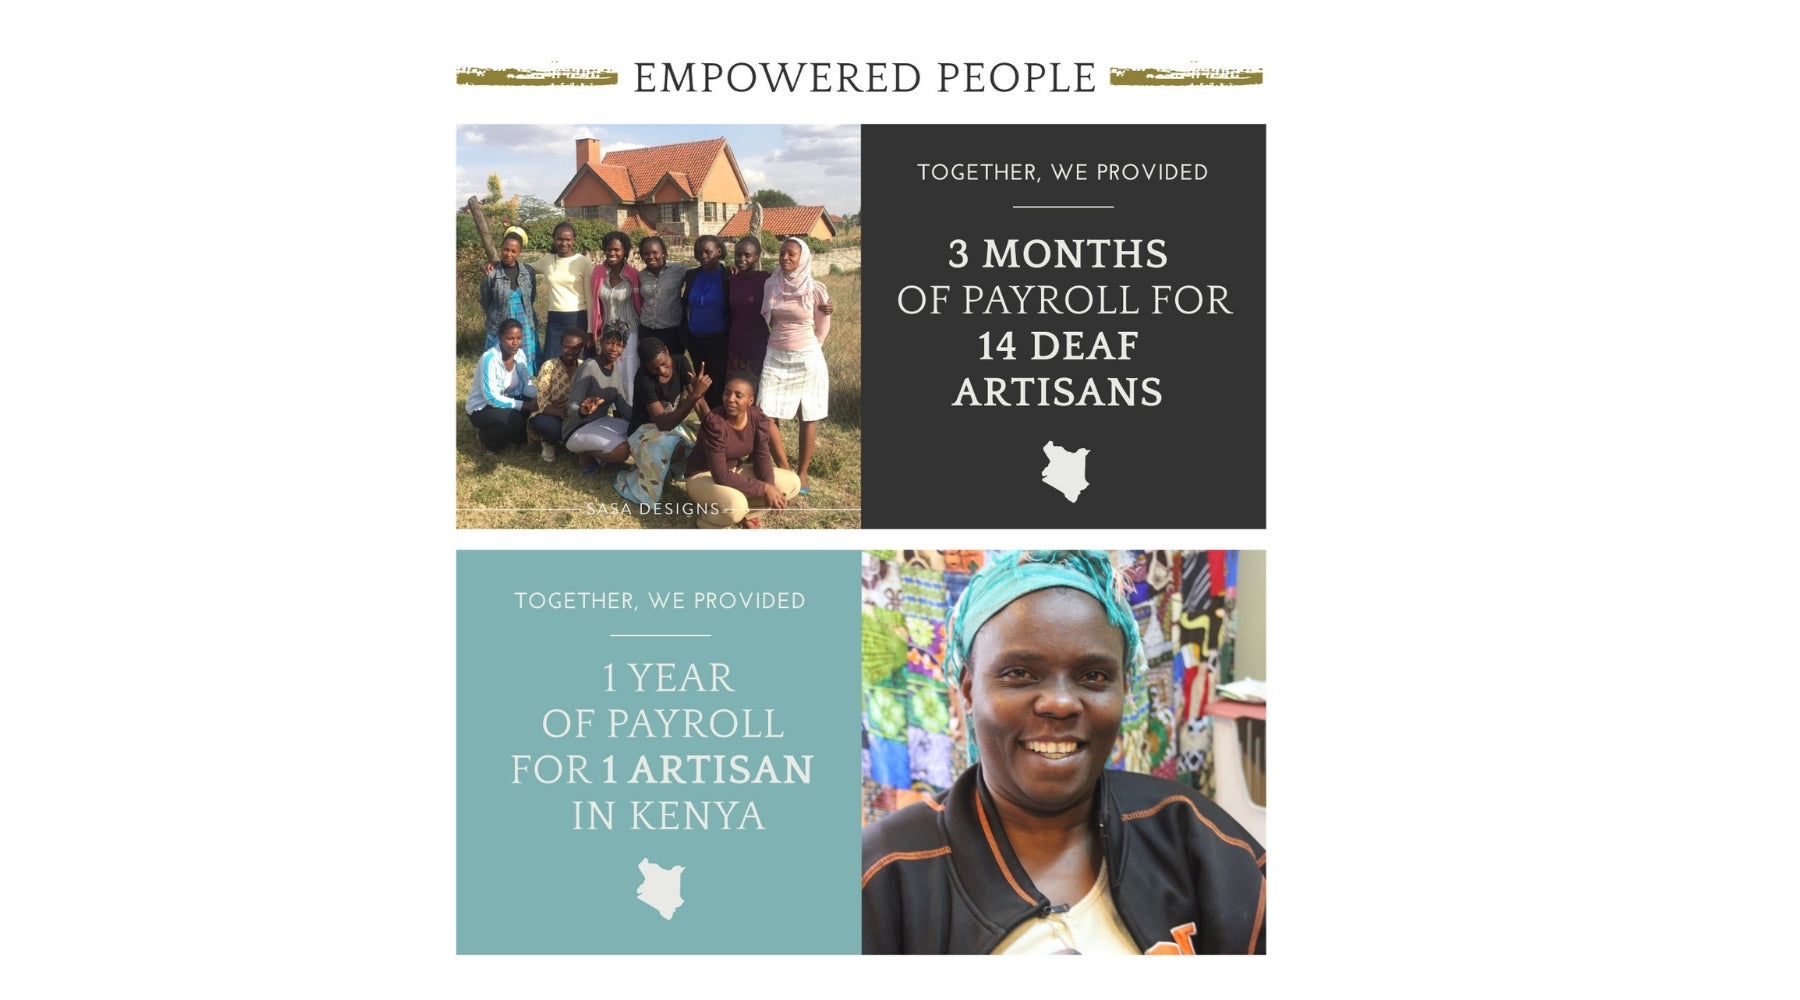 2016 Empowered People